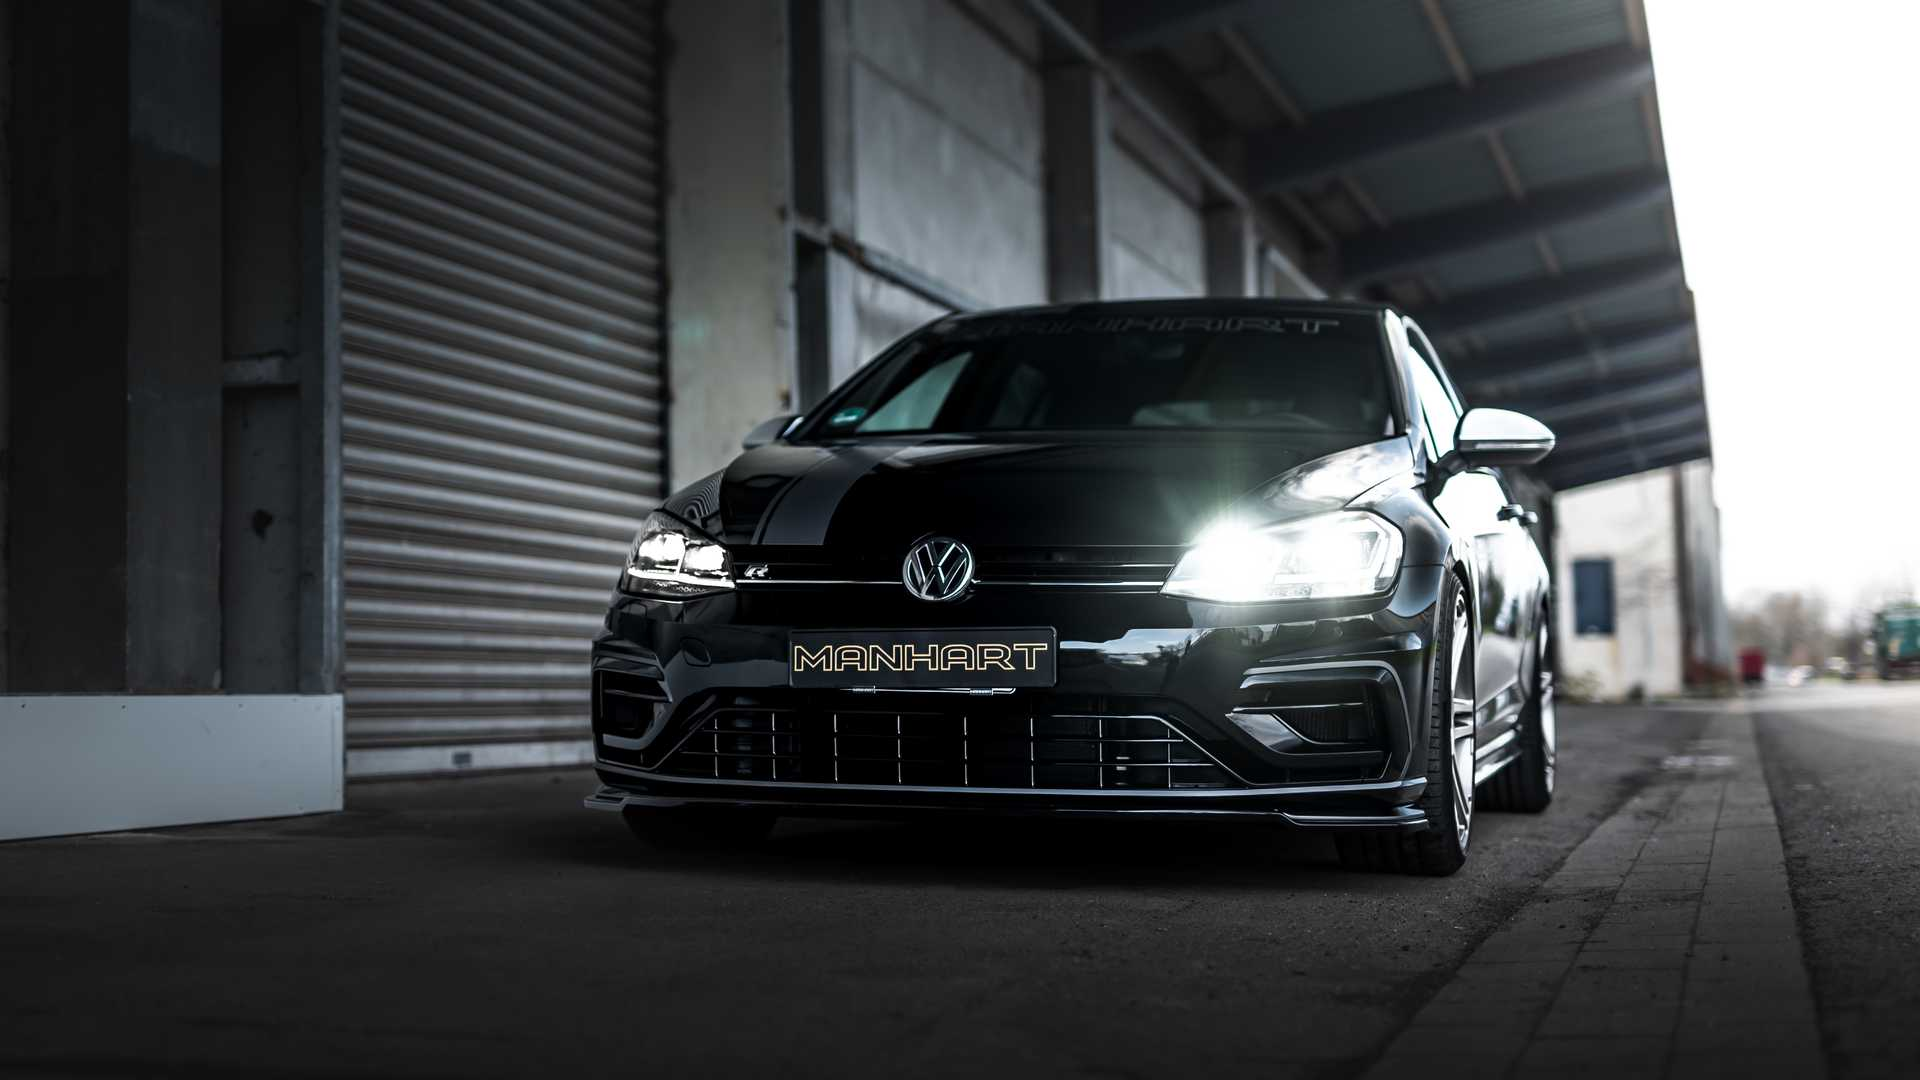 manhart-rs450-based-on-the-vw-golf-r